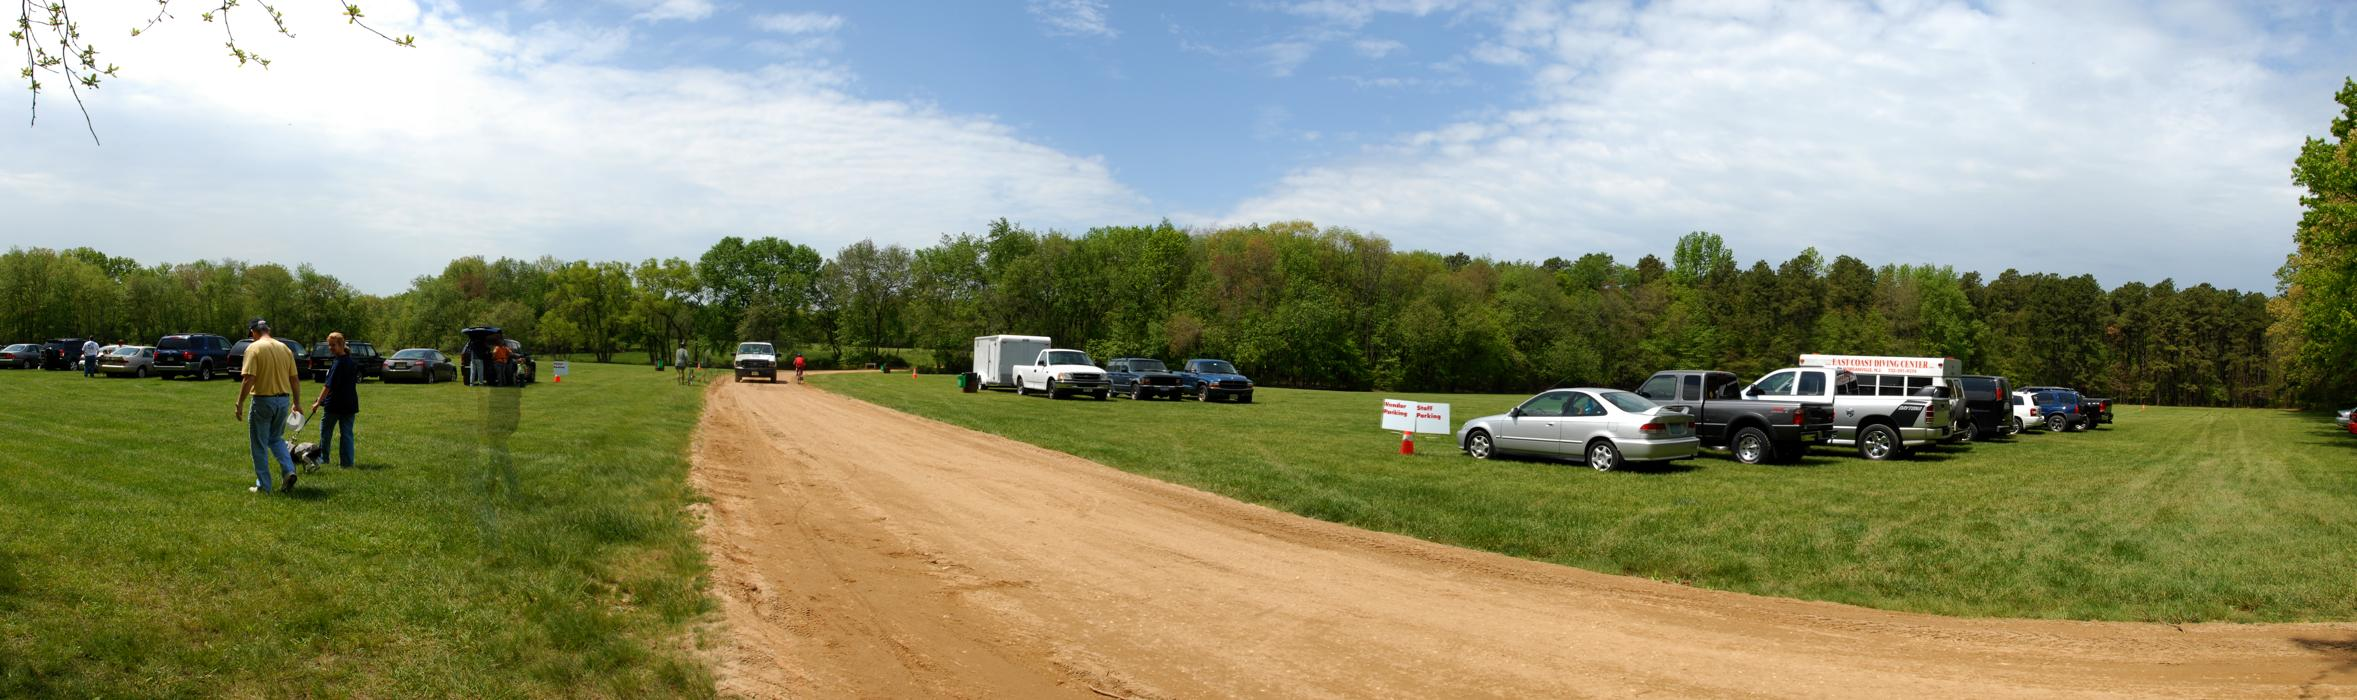 blue sky, cars, grass, panoramic, people, road, trees, woods